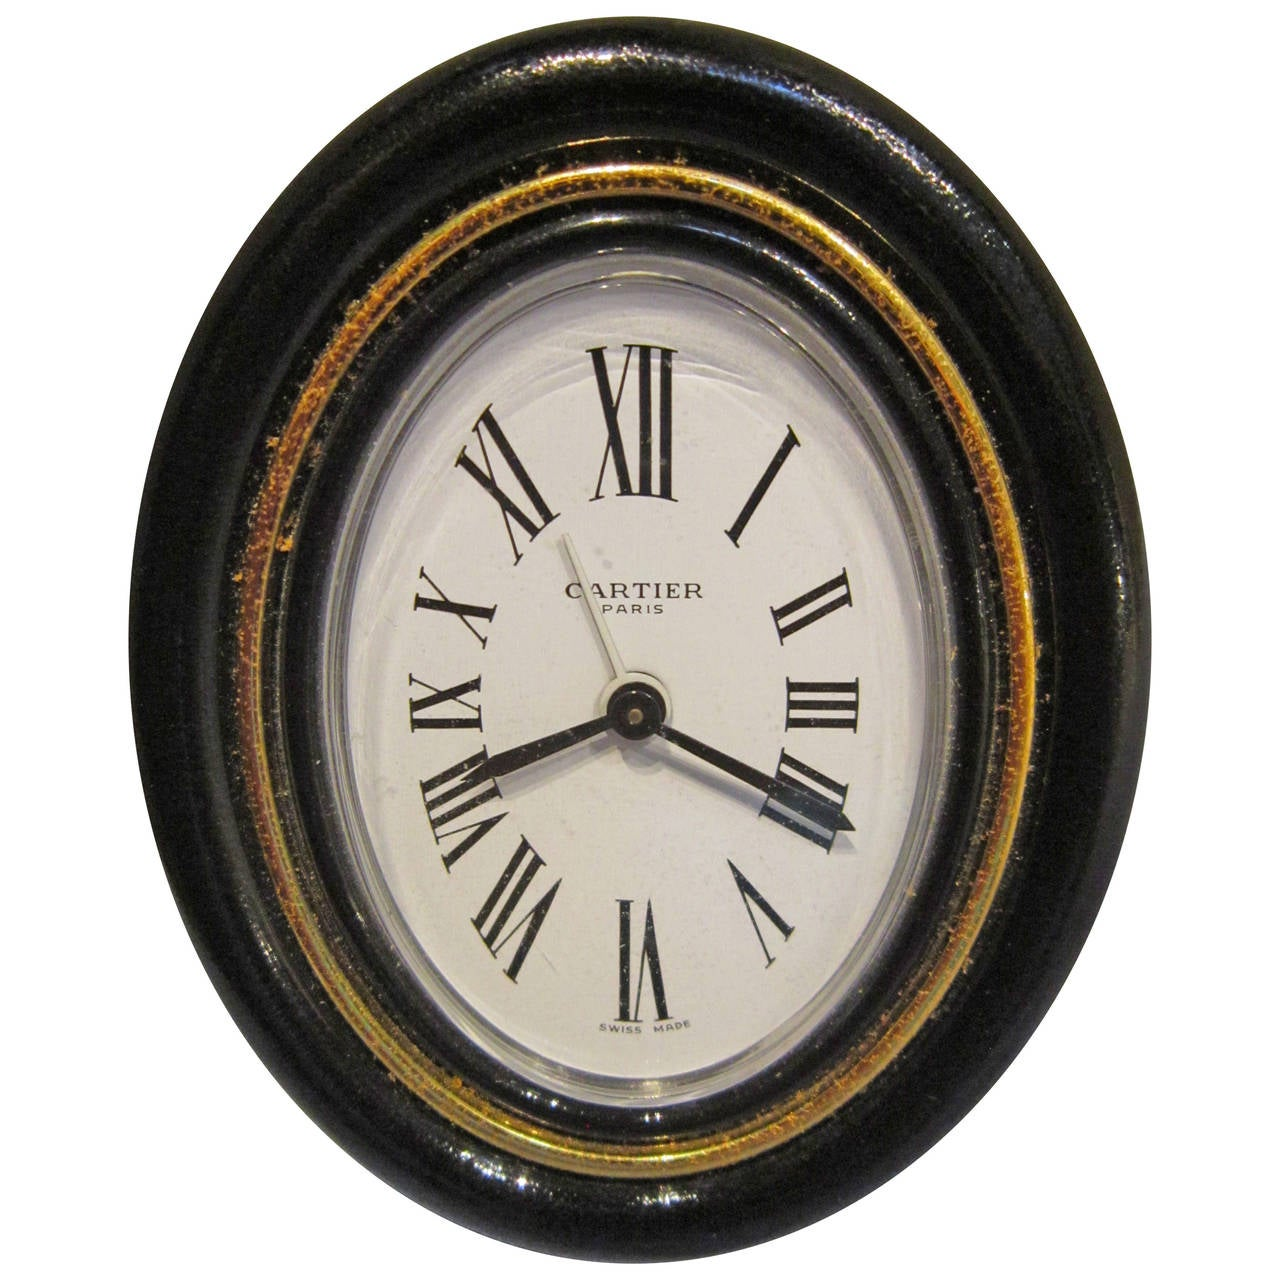 Vintage Cartier Pendulette Travel Alarm Clock And Case At